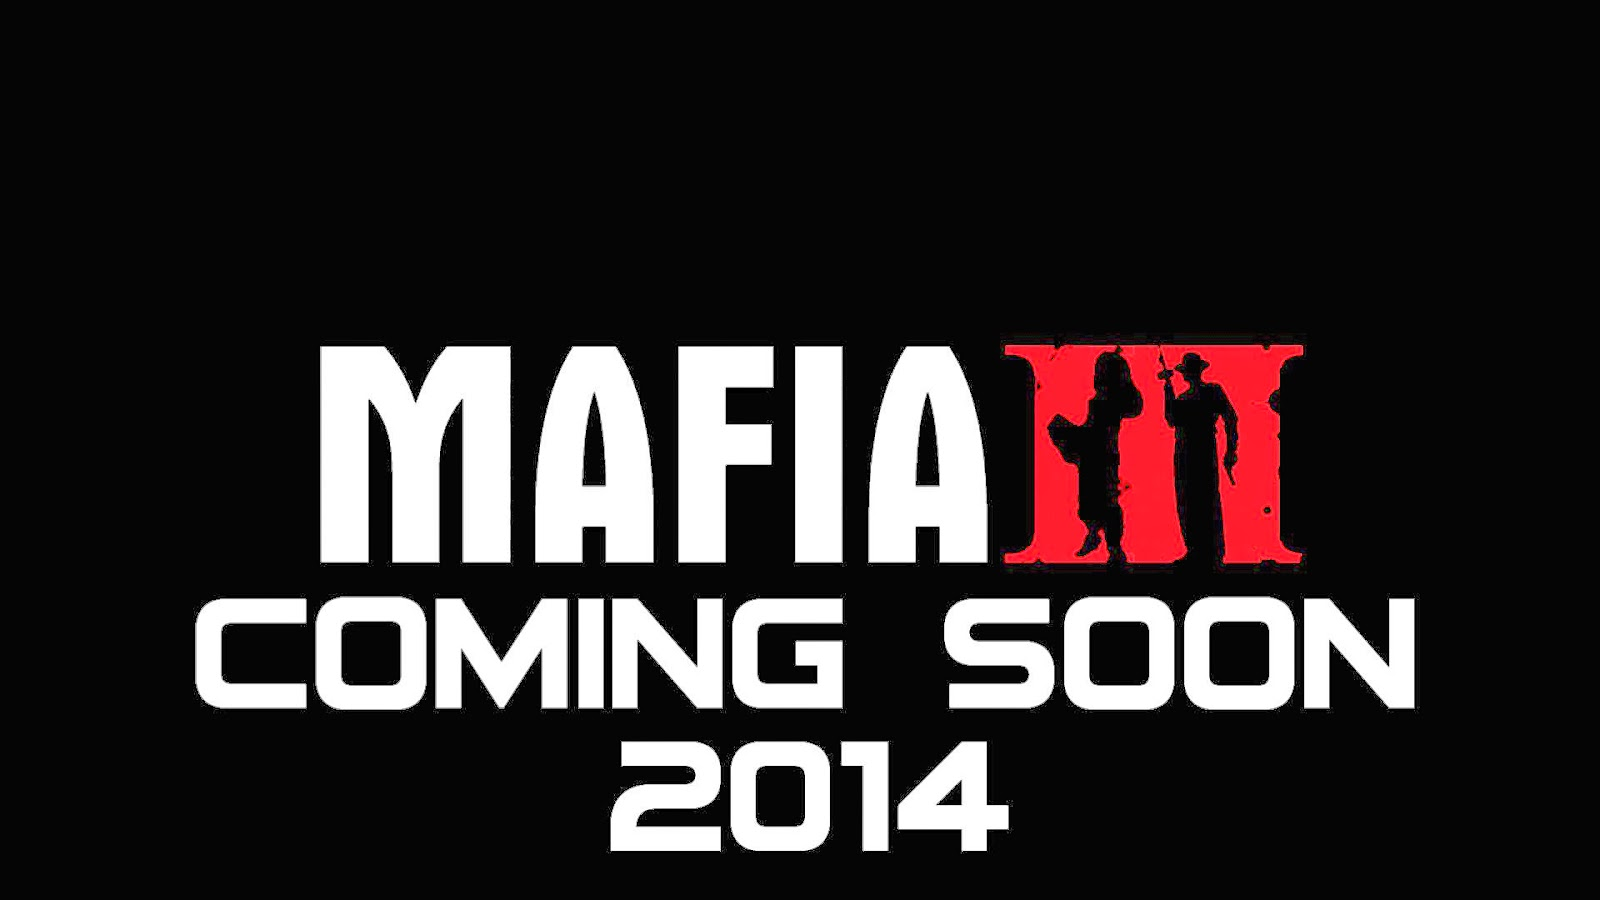 Mafia 3 coming soon